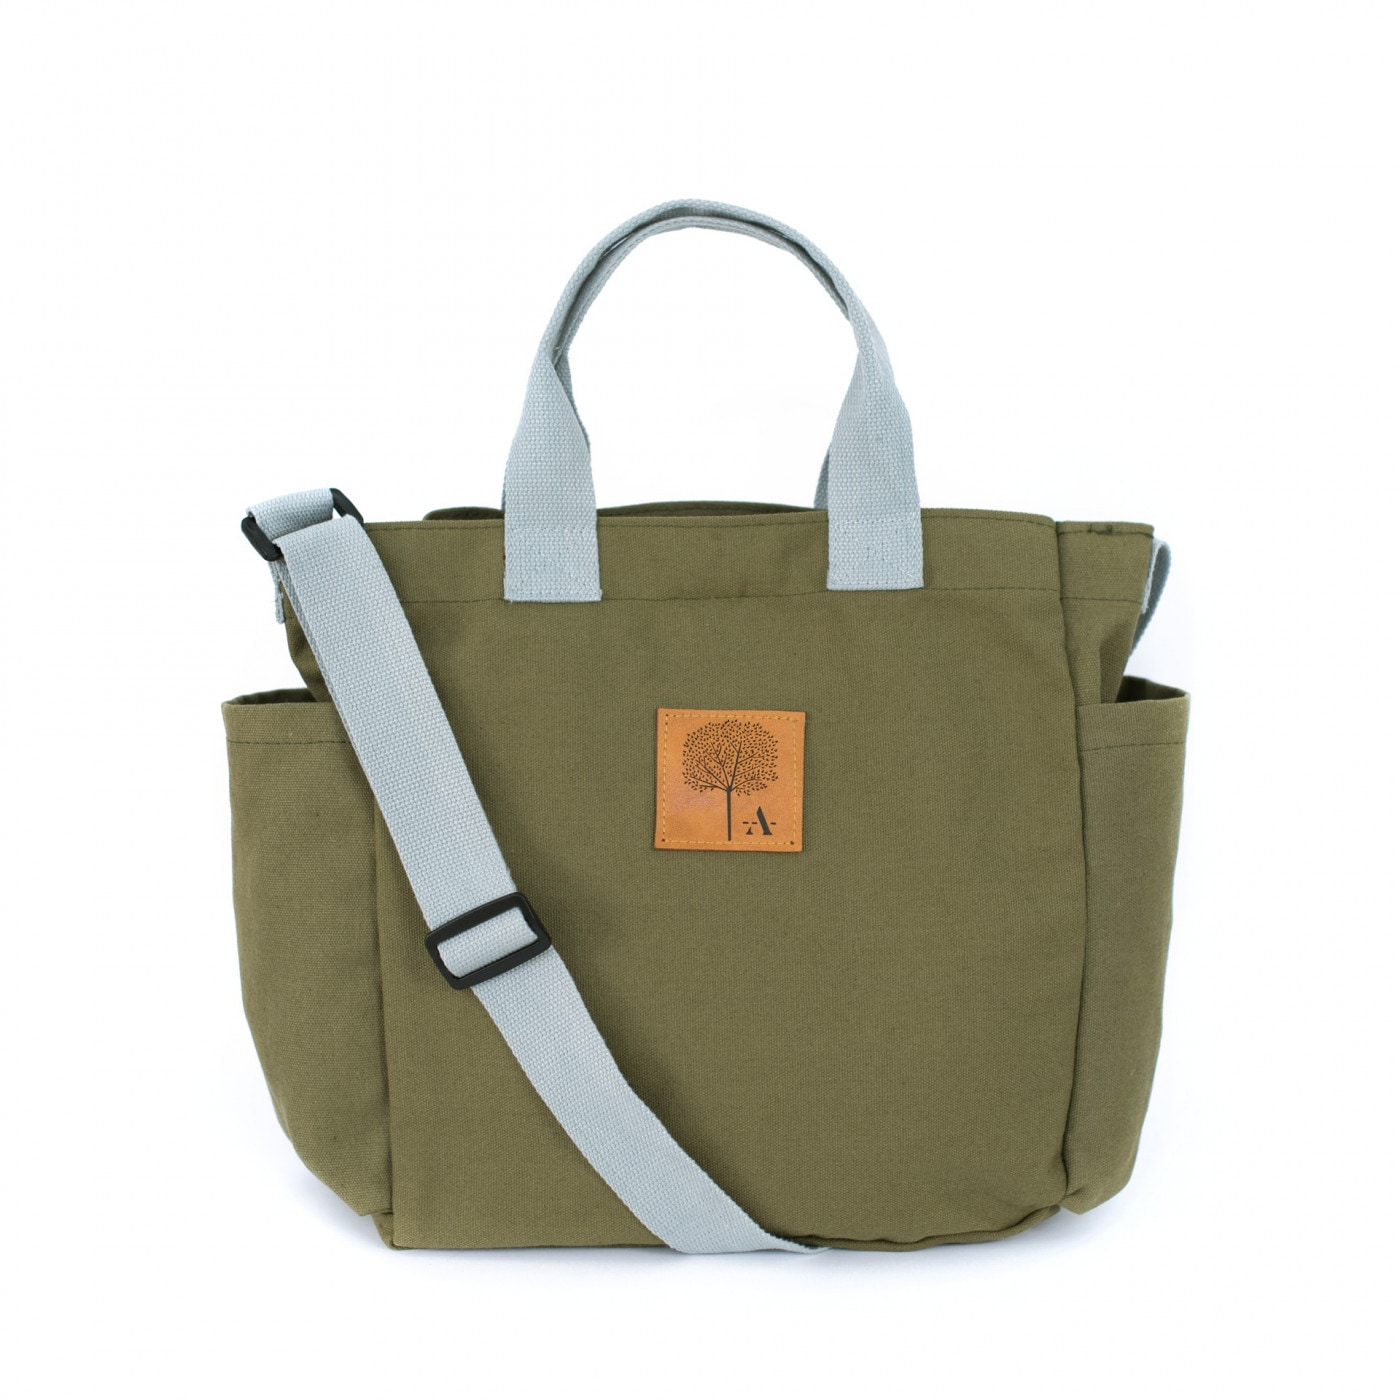 Art Of Polo Woman's Bag tr19242 Olive